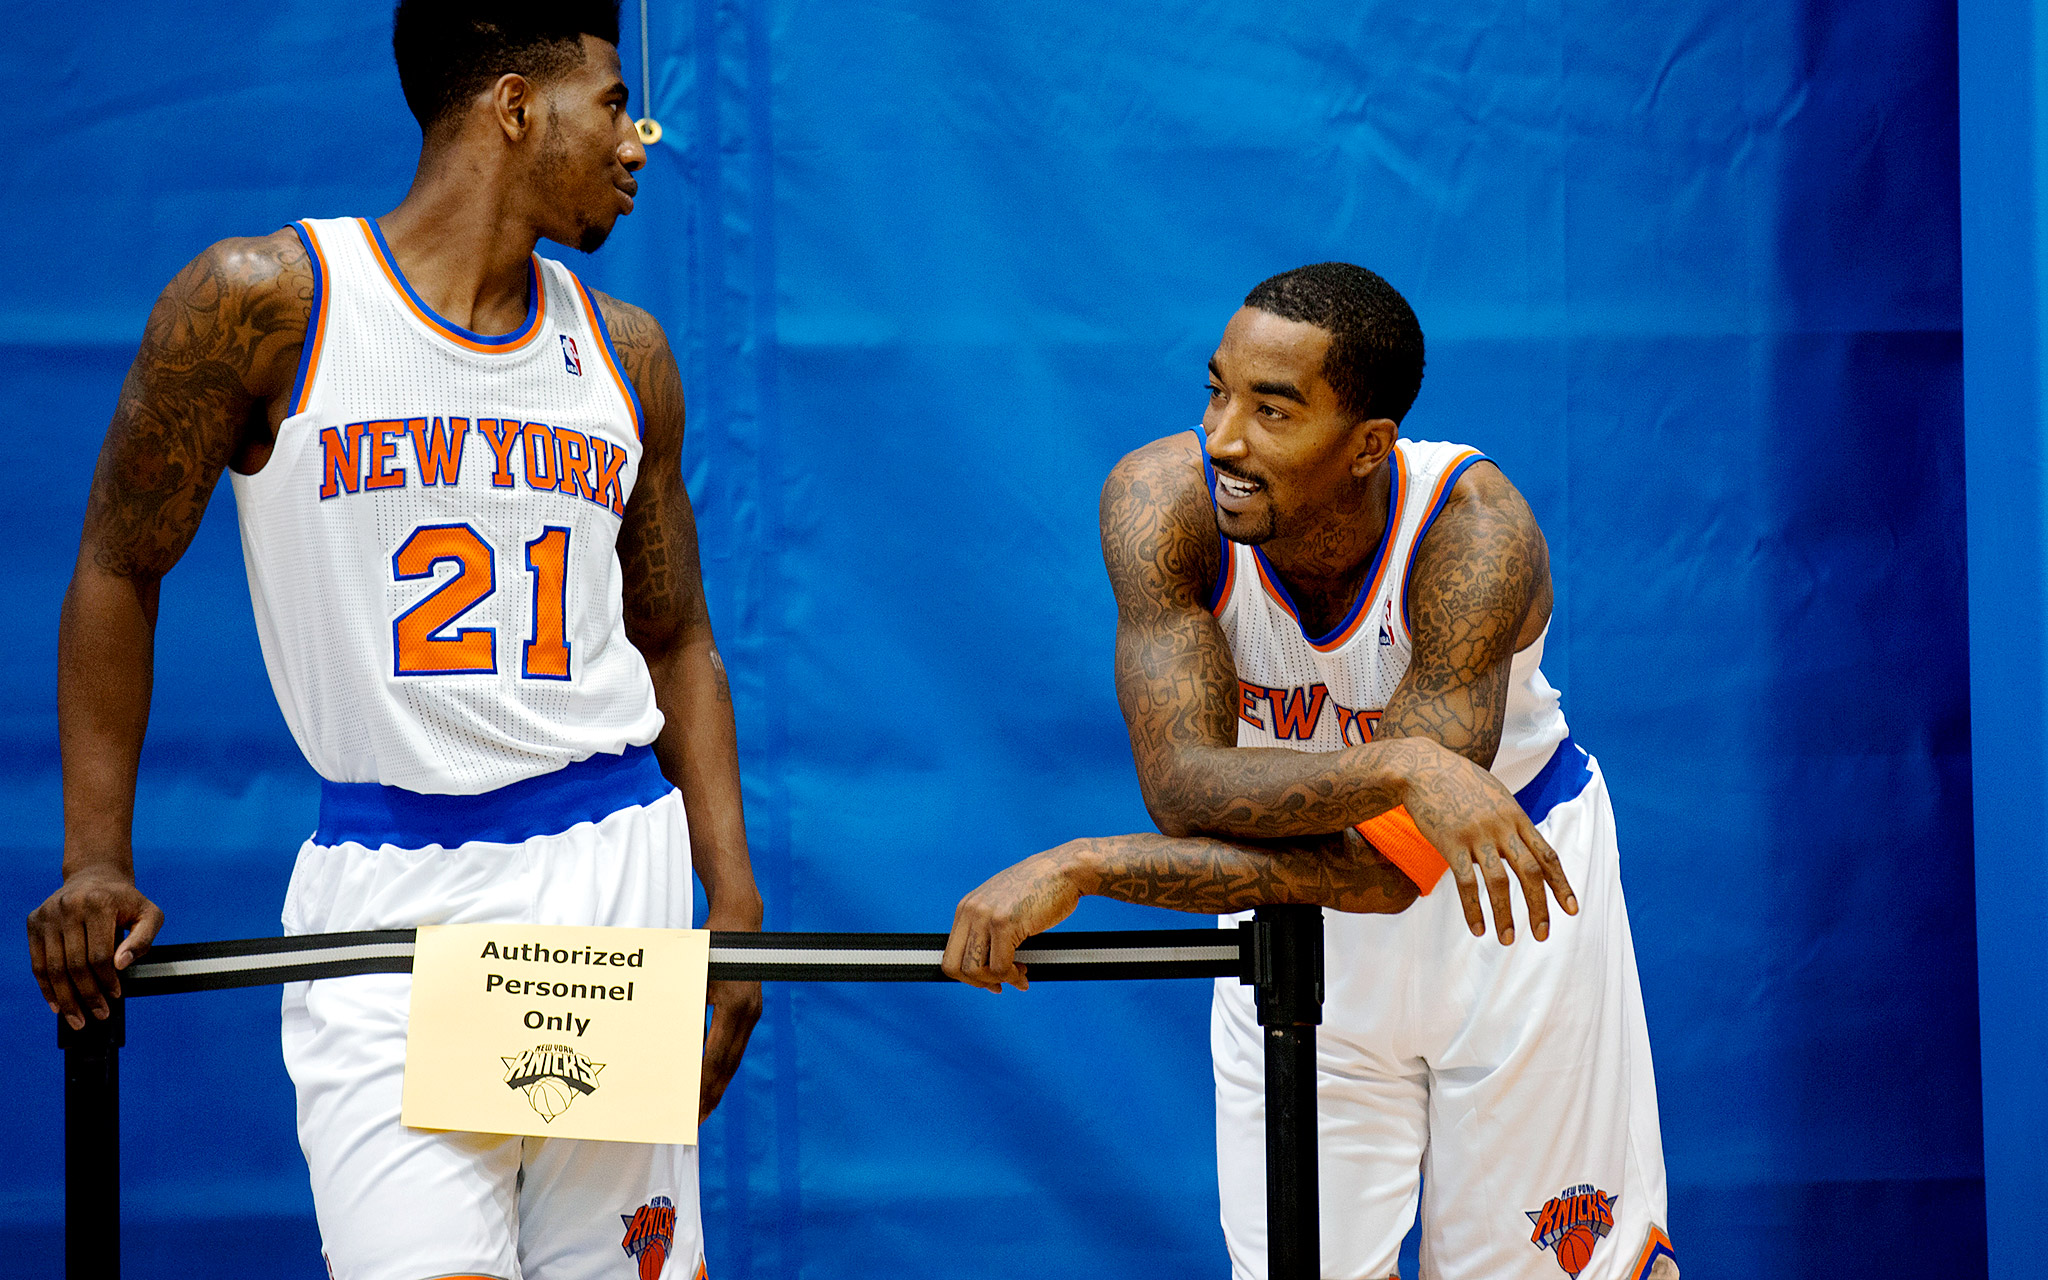 Iman Shumpert, J.R. Smith